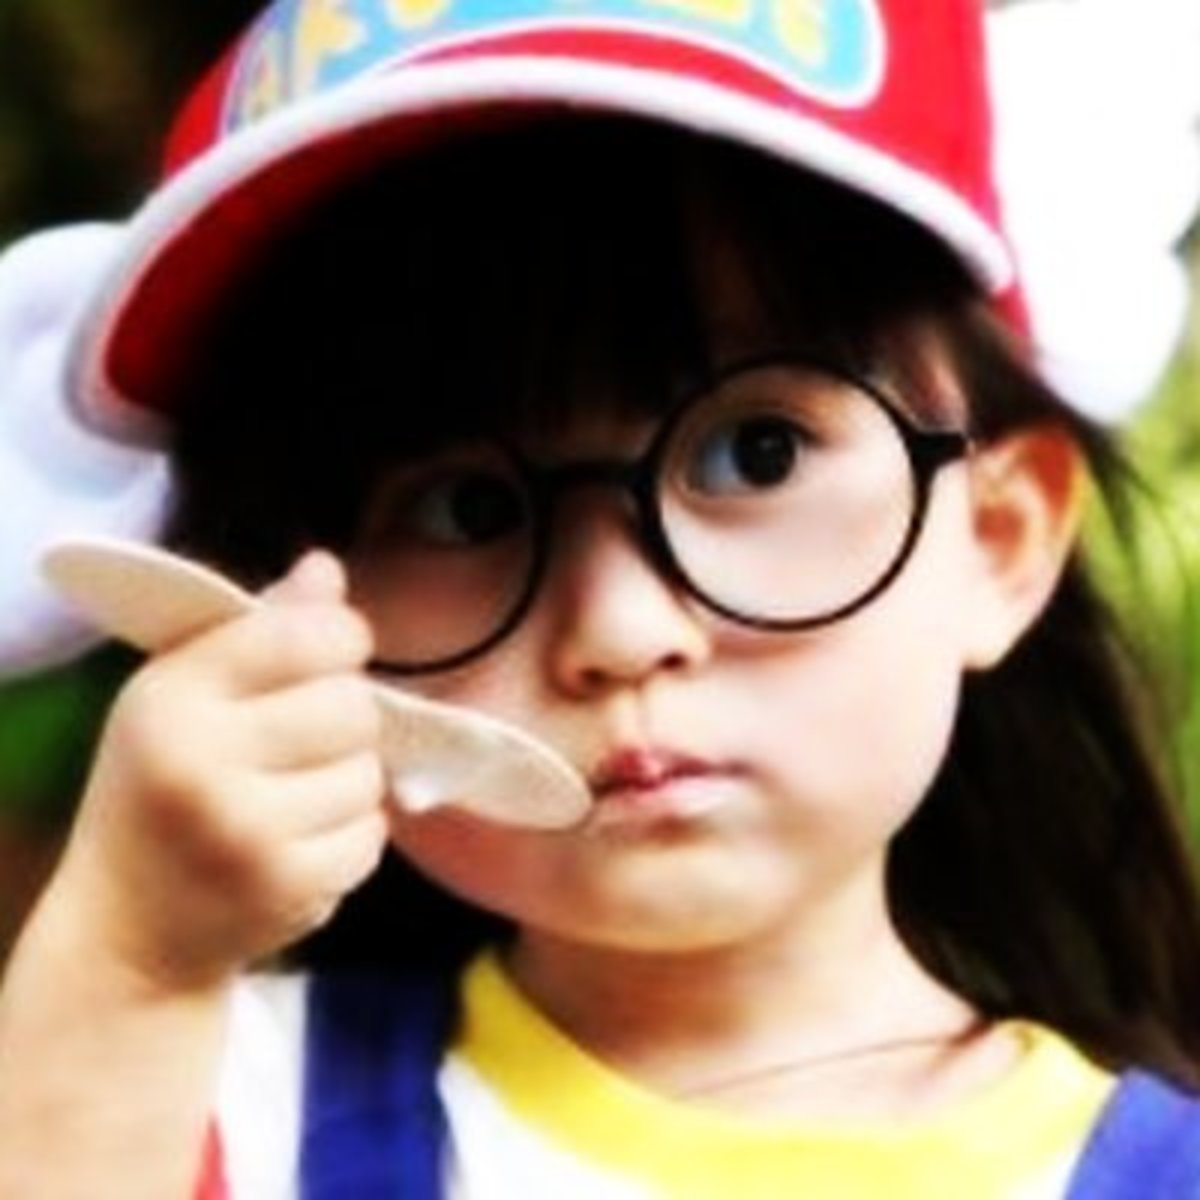 Arale-Chan Kid Cosplay